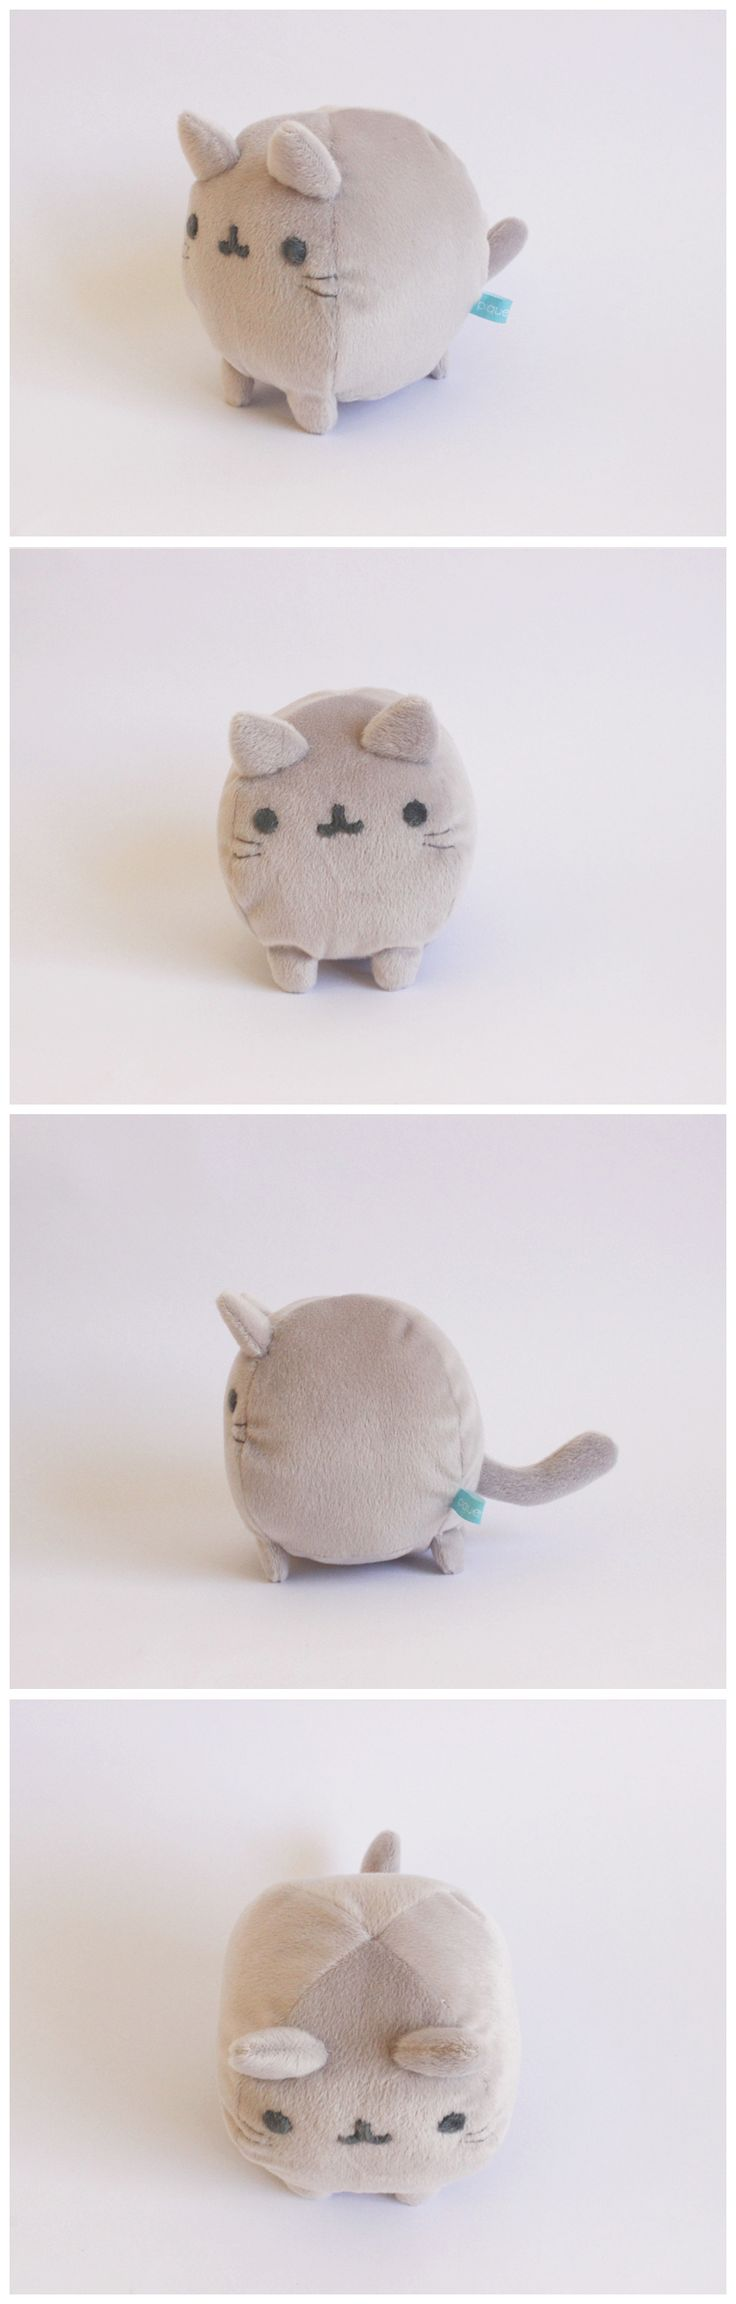 Mini gatito bola.    #handmade #toy #plush #stuffed #cat #cute #kawaii